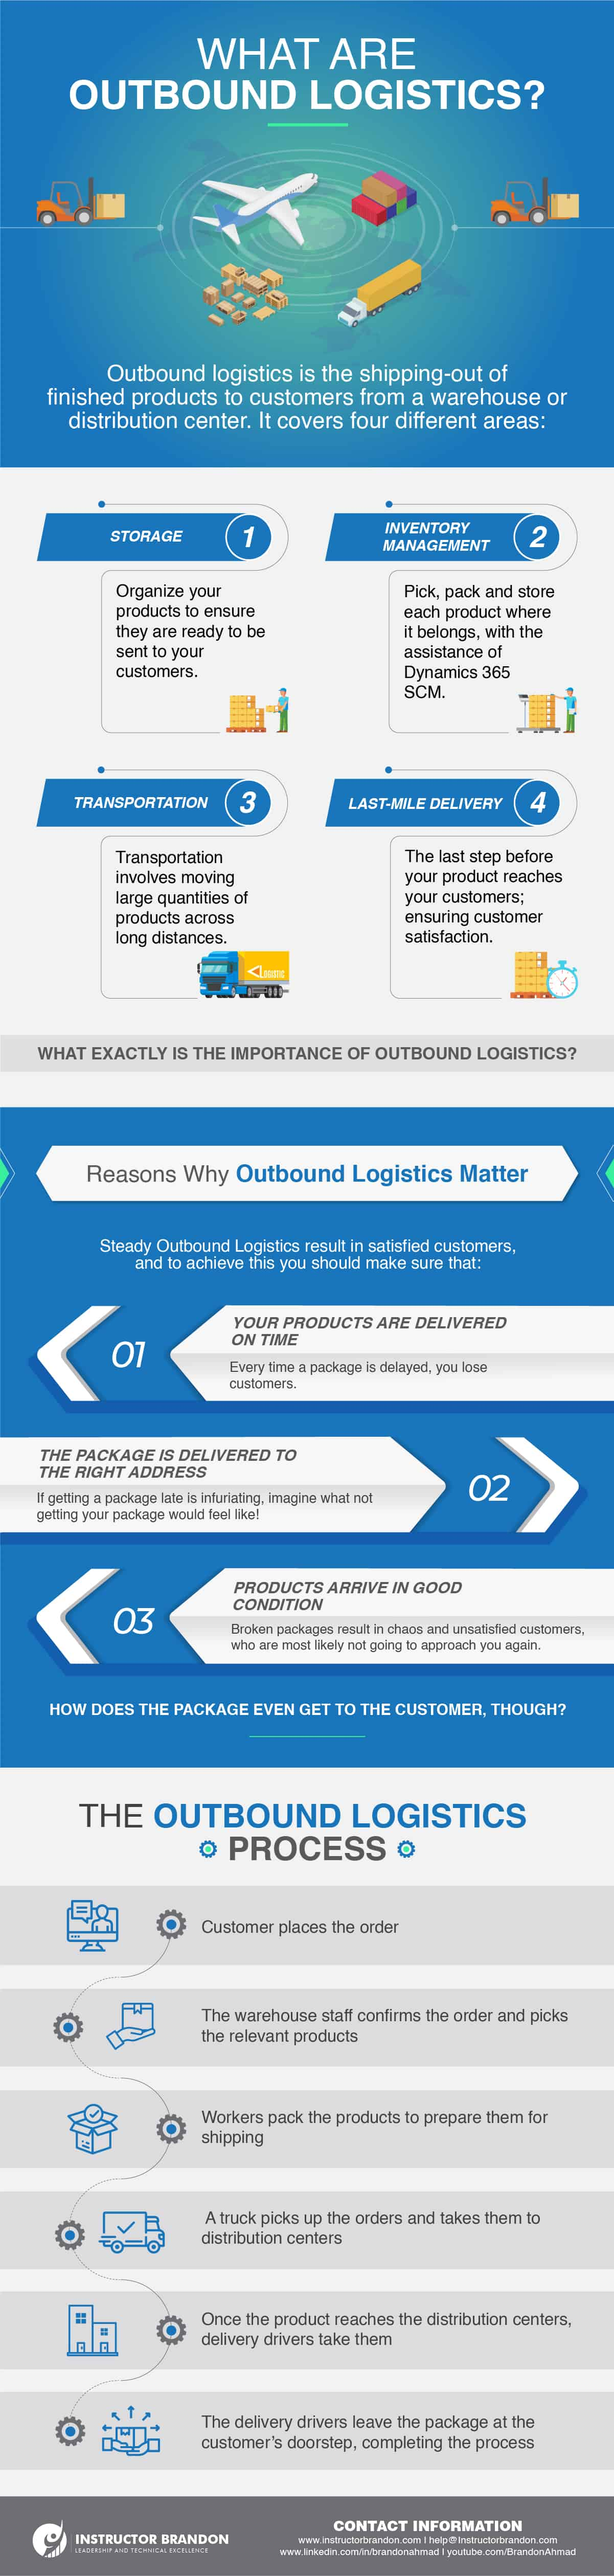 Infographic Showcasing the Definition and Importance of Outbound Logistics, With an Example of What the Outbound Process is Like